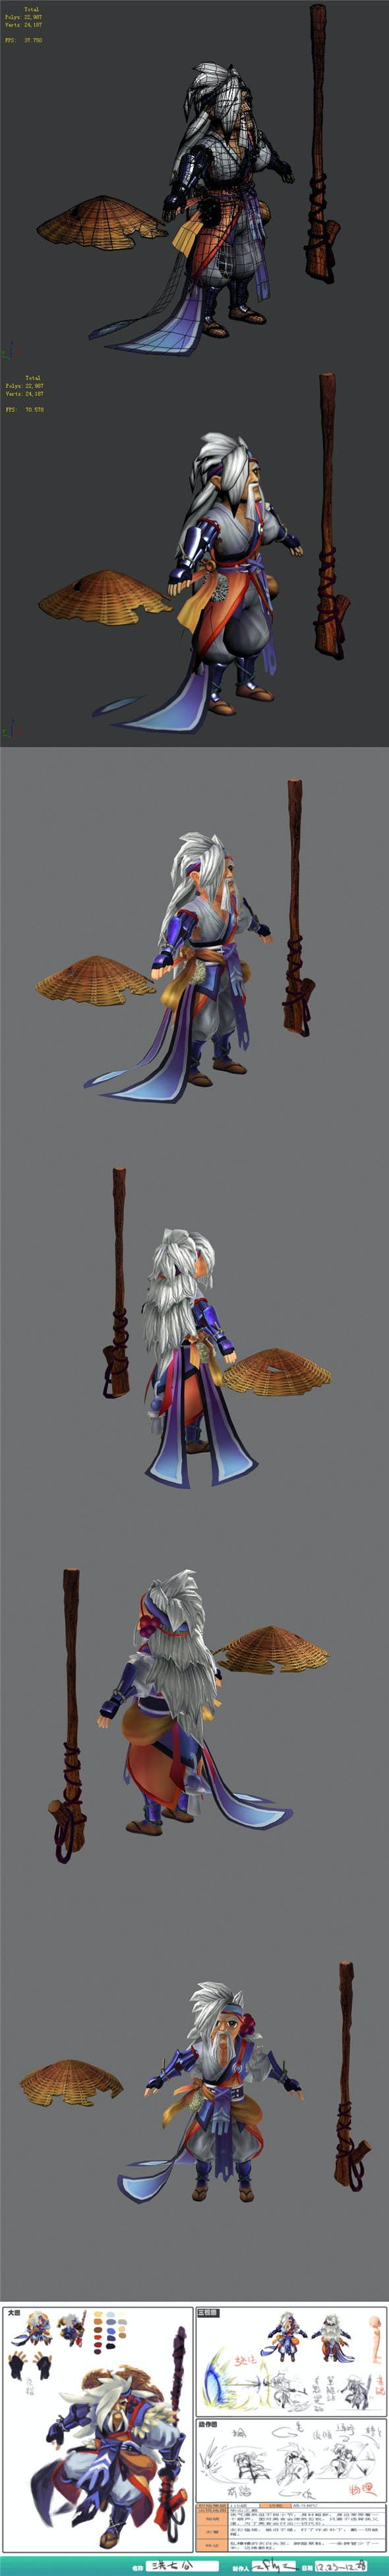 The characters of the game - Hong Qi Gong - 3DOcean Item for Sale